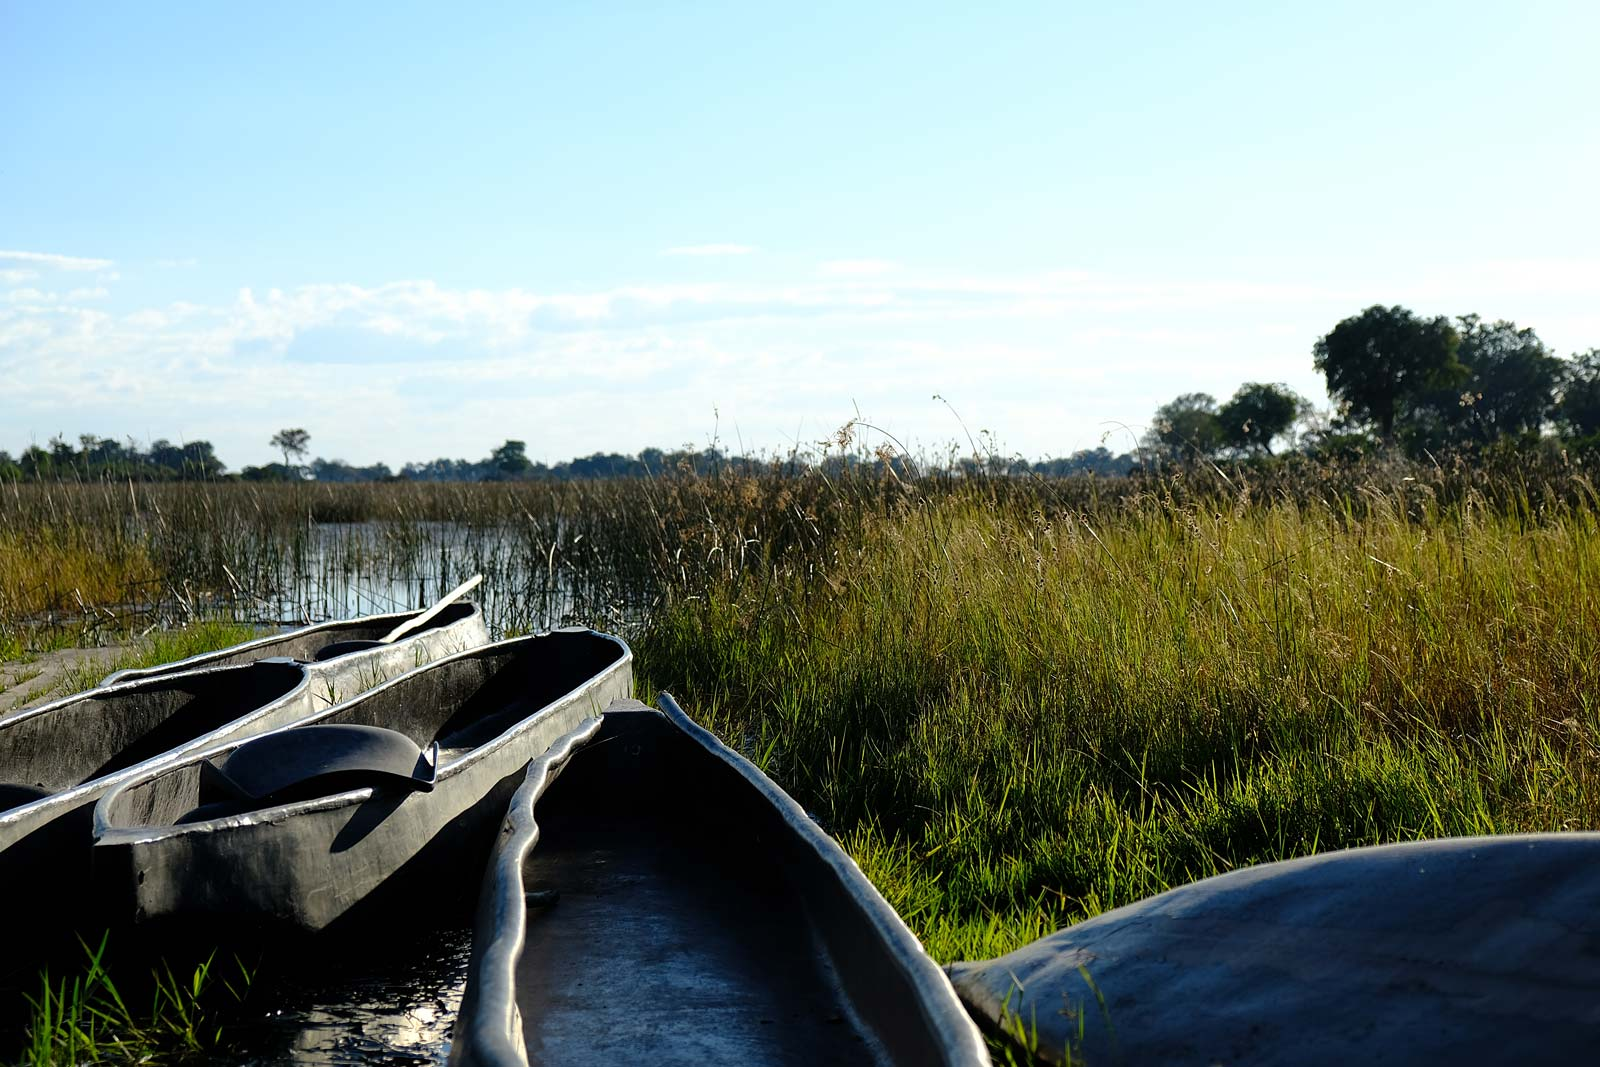 Mokoro ready for a river trip in the Okavango Delta